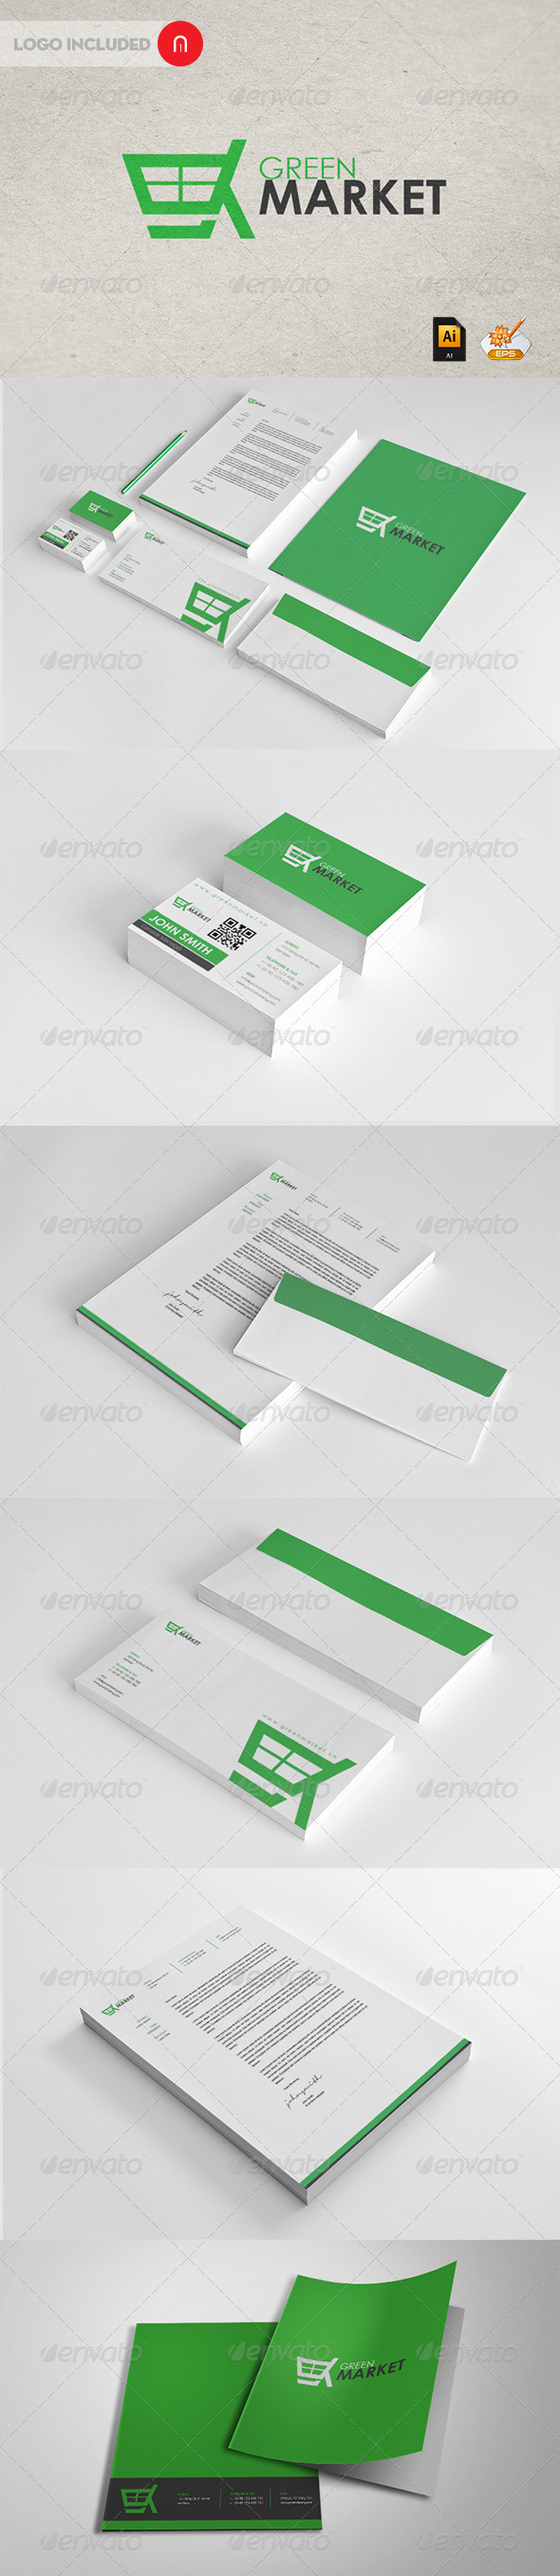 GraphicRiver Green Market Corporate Identity 2703505